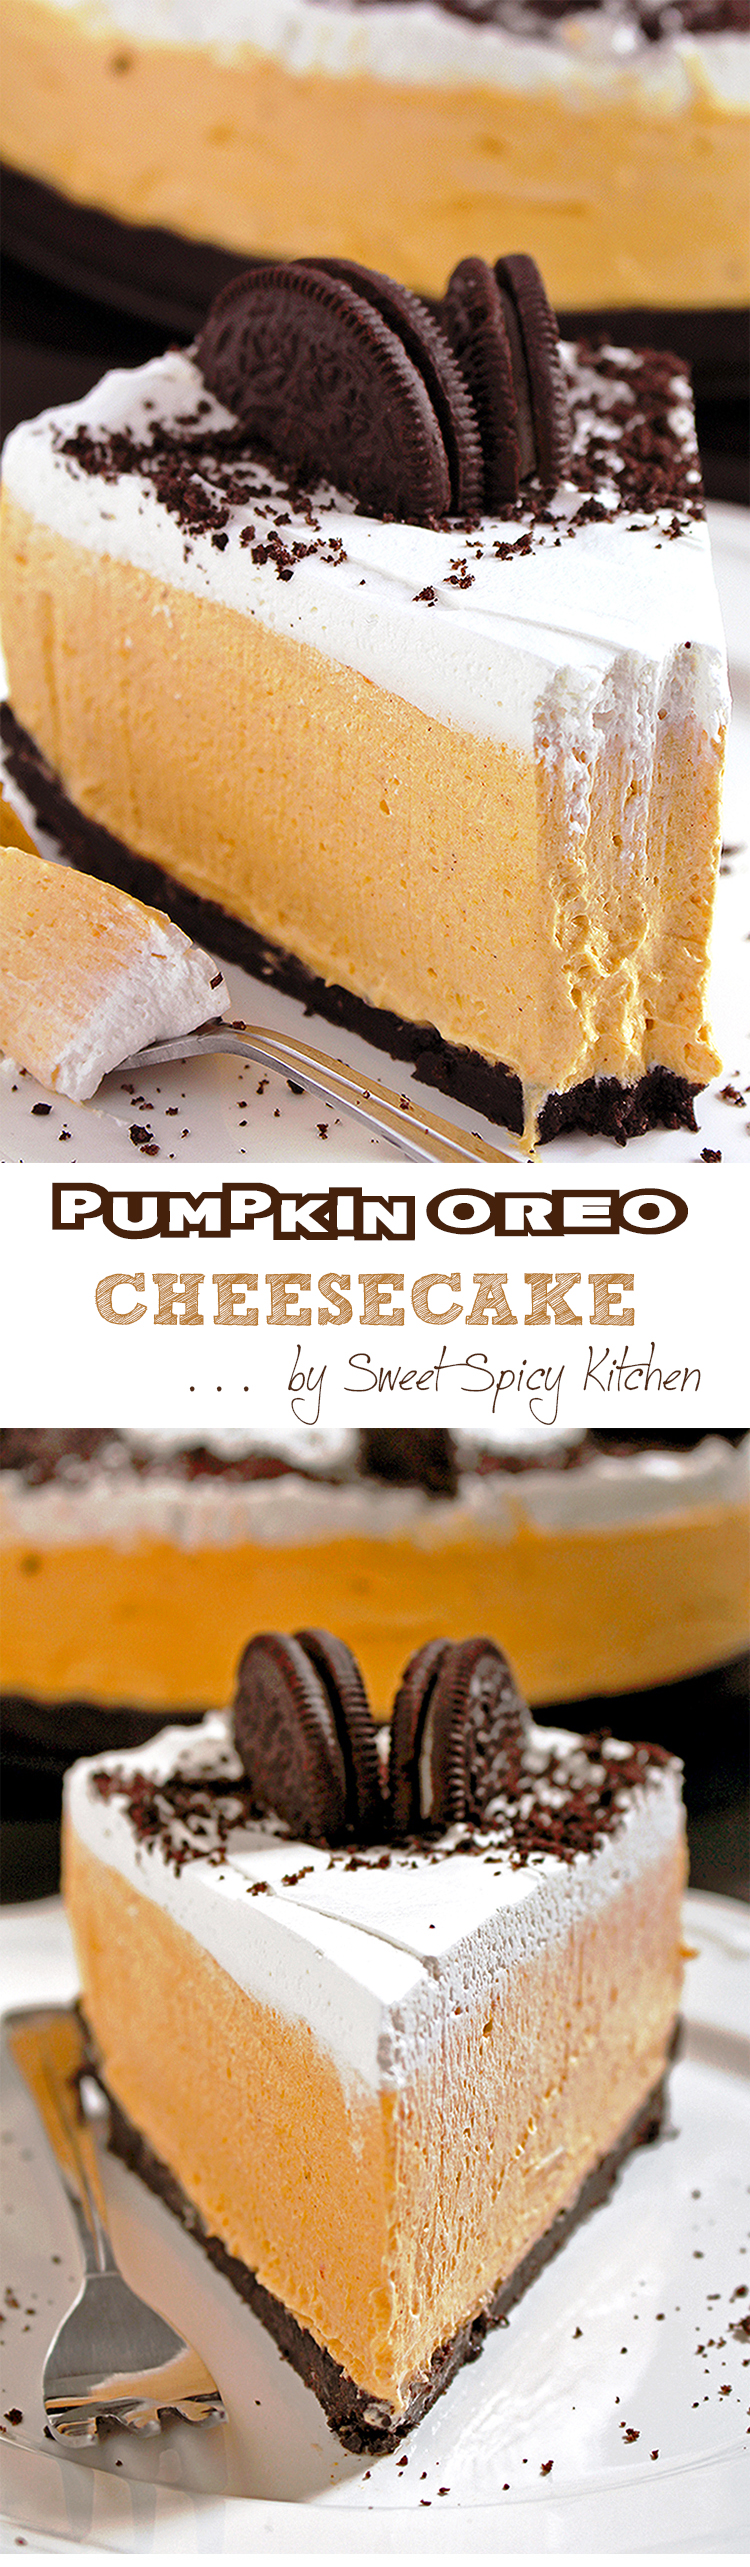 Easy No Bake Pumpkin Oreo Cheesecake so perfect for holidays and special occasions. Oreo crust, rich pumpkin cheesecake filling and whipping cream topping. Great homemade festive dessert!